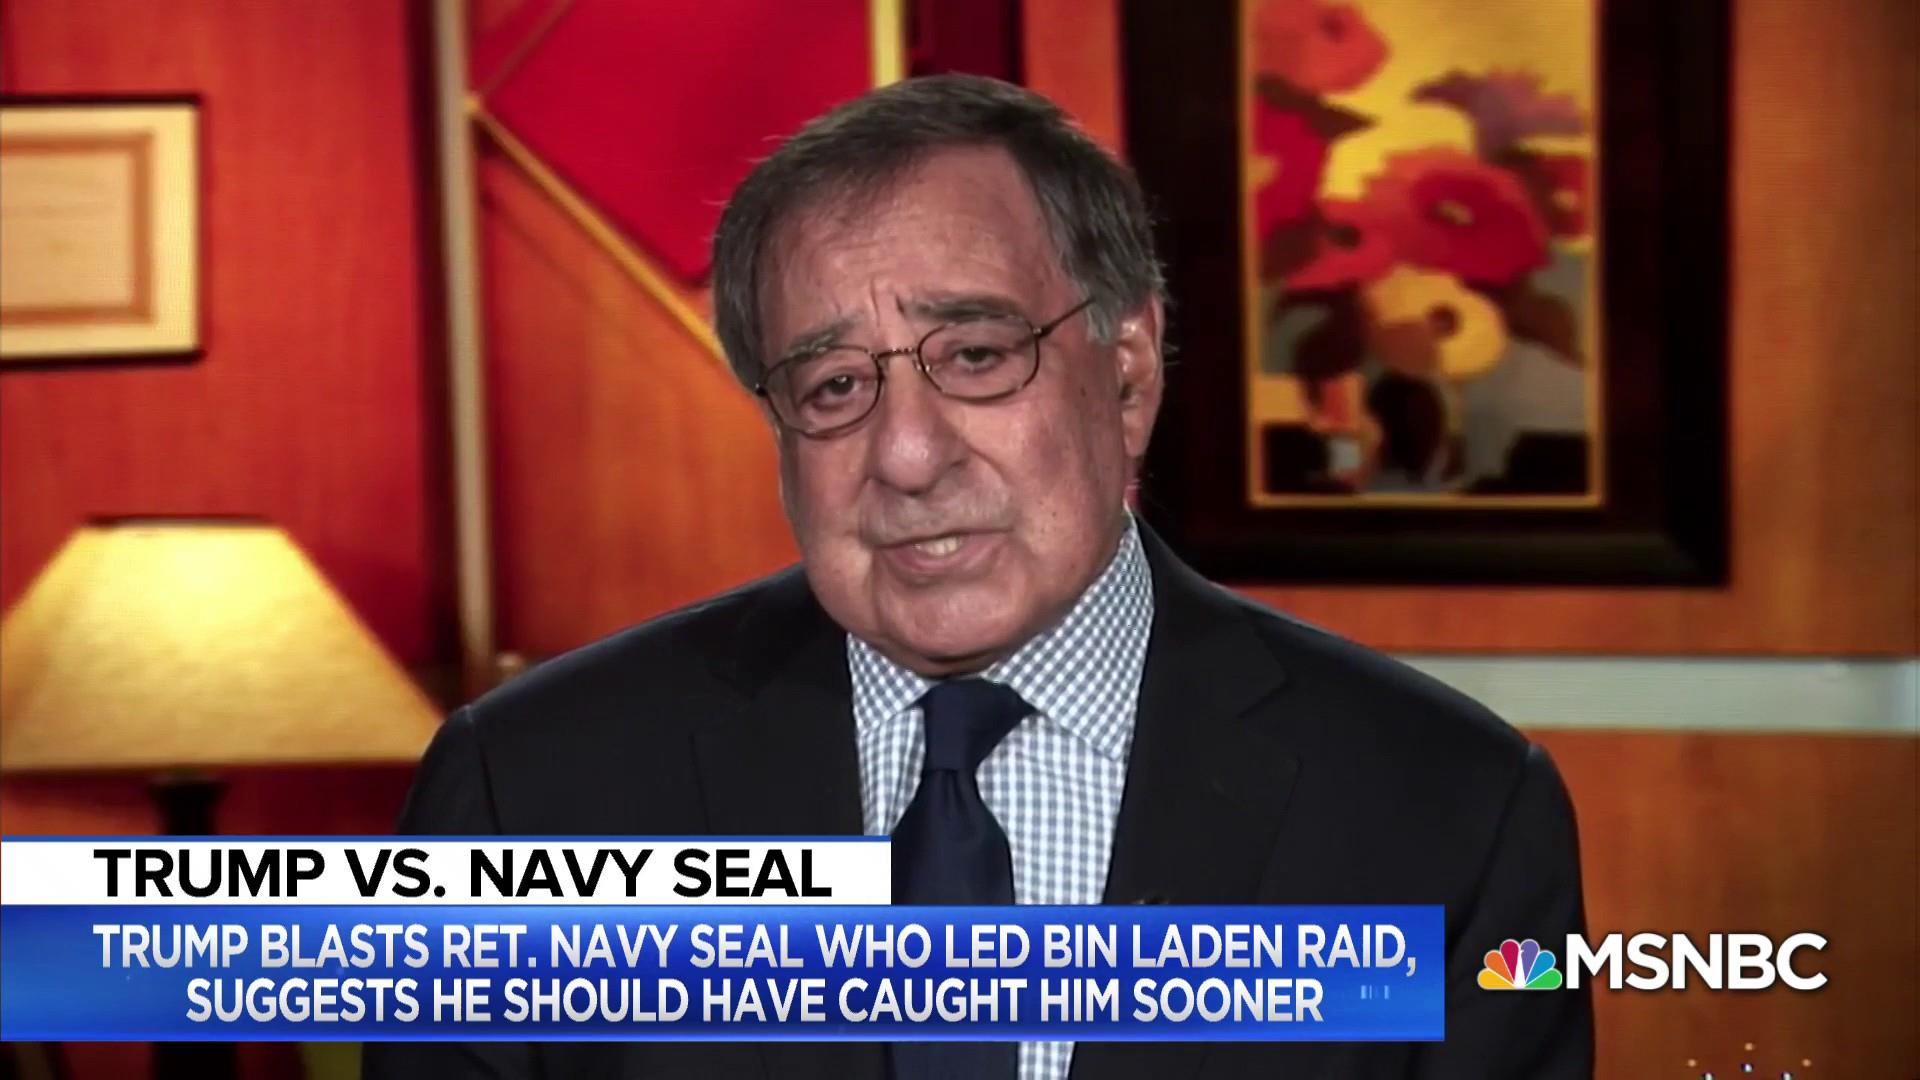 Leon Panetta: President Trump undermining his position, owes Admiral McRaven an apology